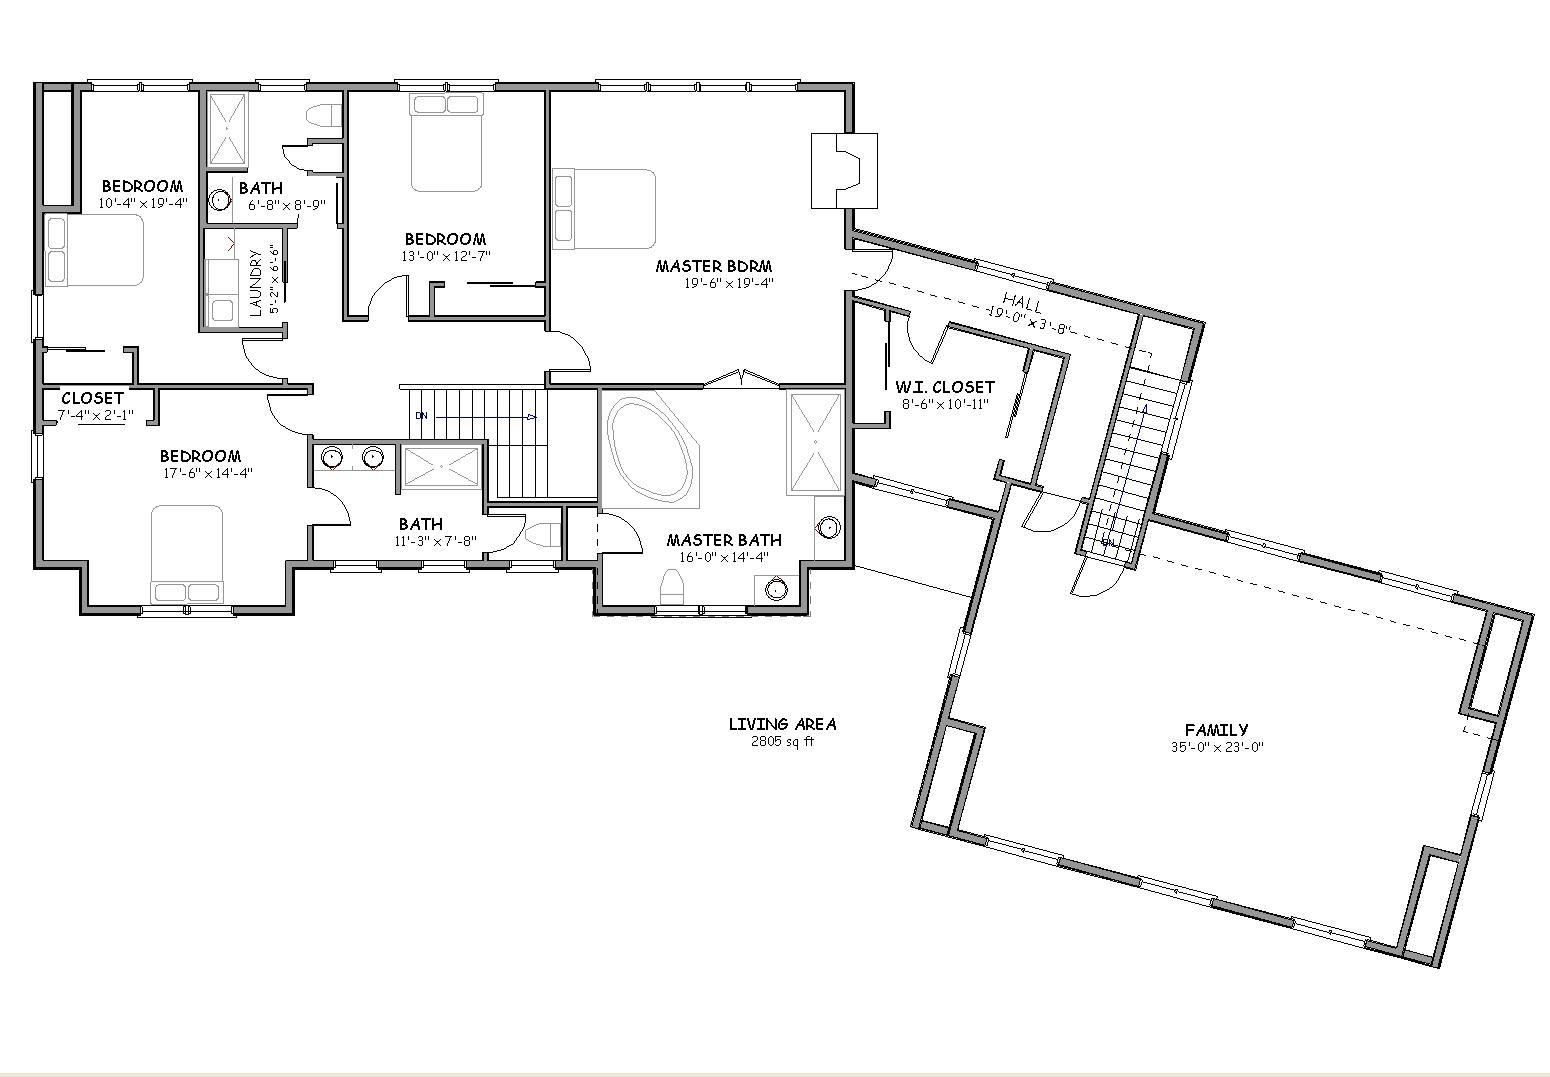 big home blueprints this designer is available to provide estimates for custom changes blue print pinterest home plans house plans and luxury